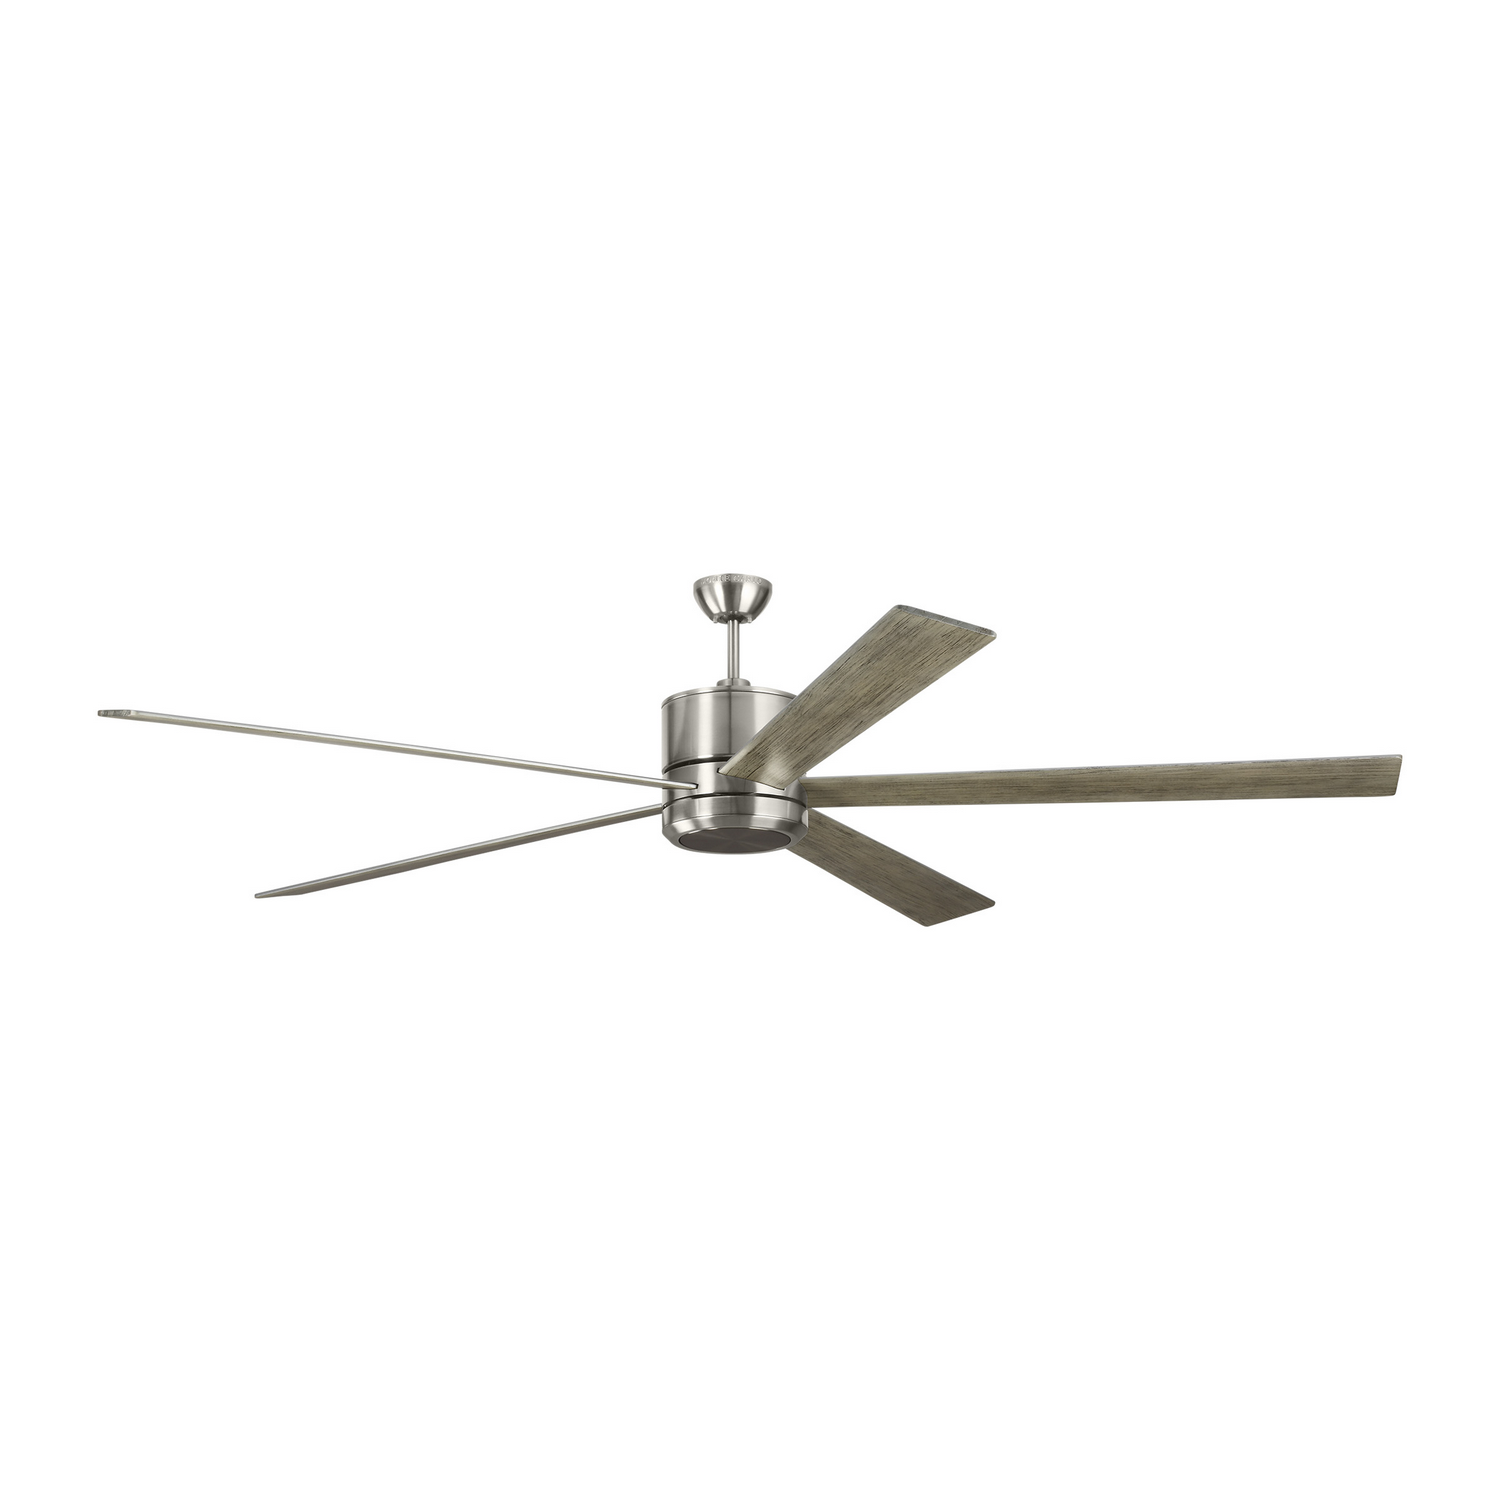 84 inchCeiling Fan from the Vision 84 collection by Monte Carlo 5VMR84BSD